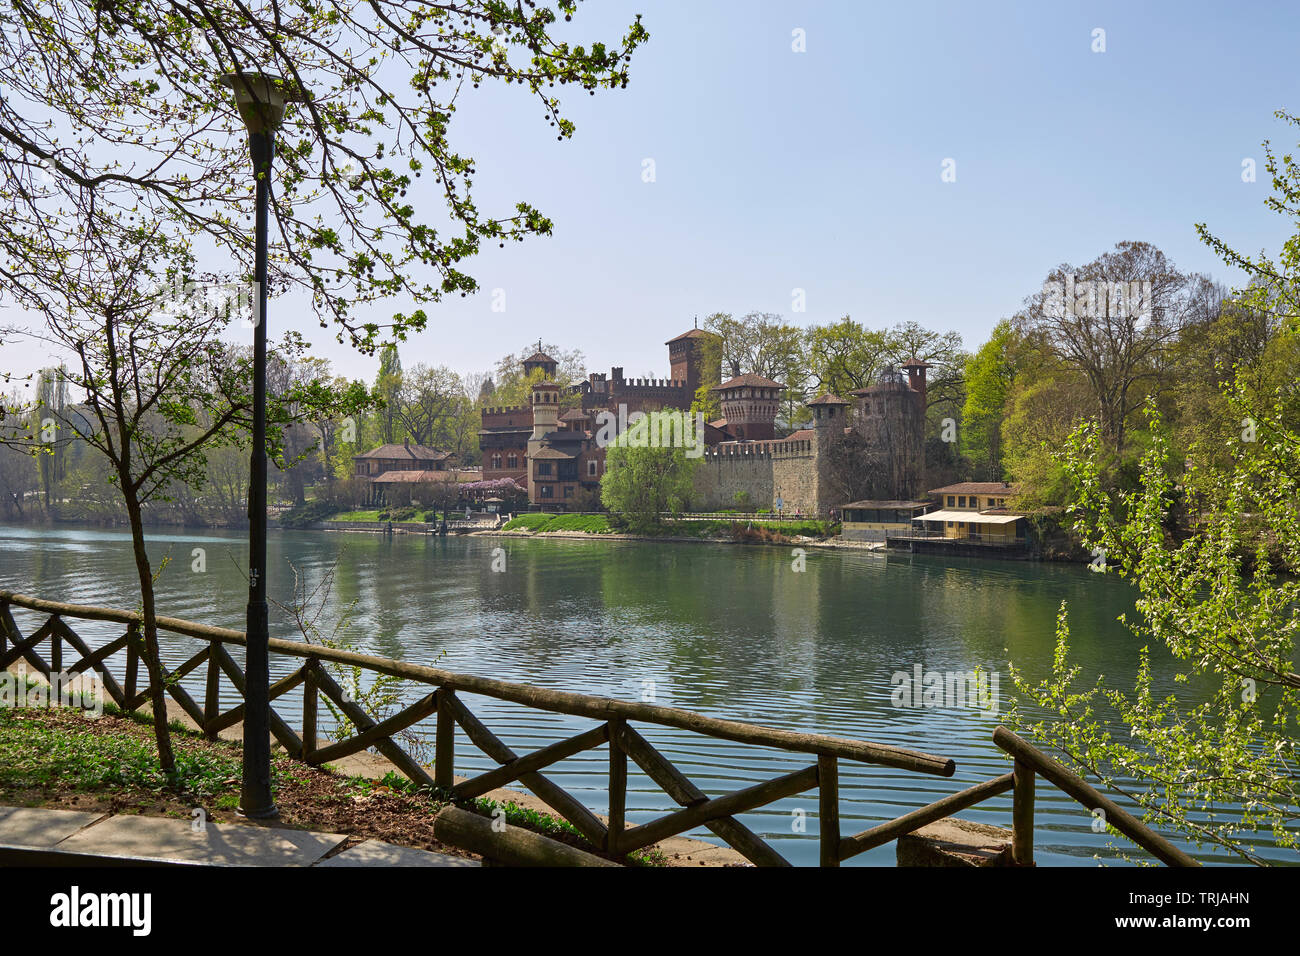 TURIN, ITALY - MARCH 31, 2019: Borgo medievale, medieval village and castle with Po river in a sunny day, clear blue sky in Piedmont, Turin, Italy. Stock Photo